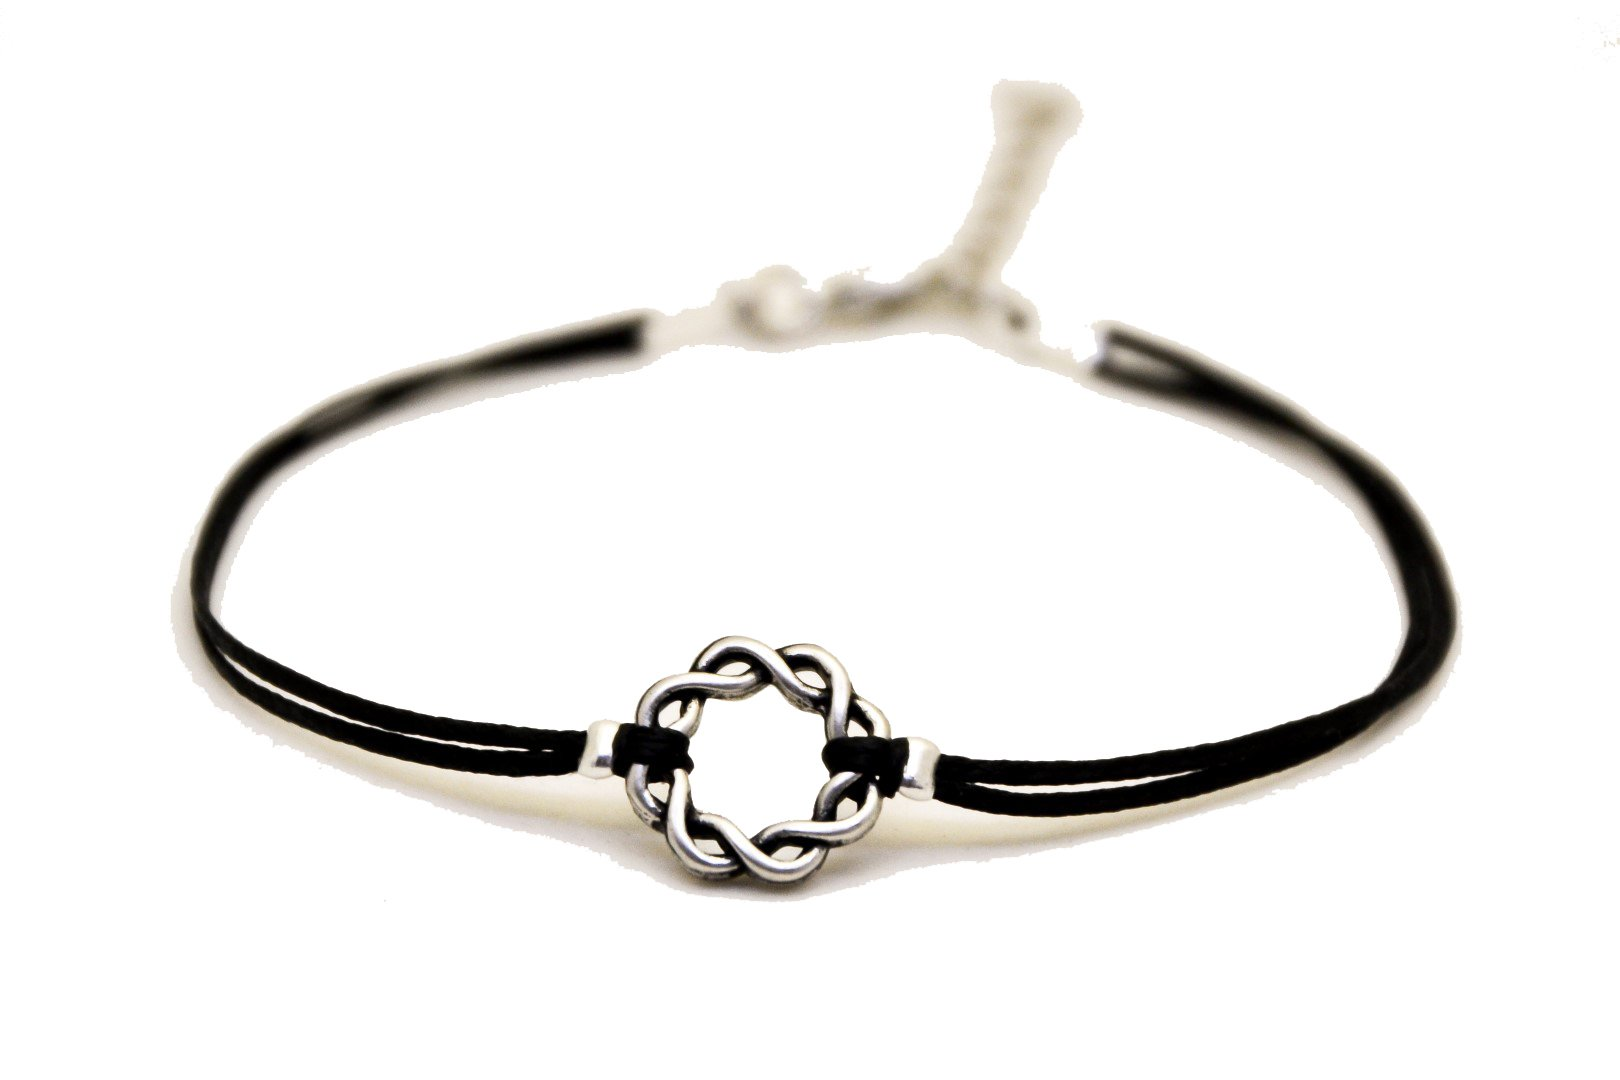 Black anklet Karma anklet with a silver braided circle charm, black ankle bracelet, gift for her, minimalist jewelry, spiritual, yoga